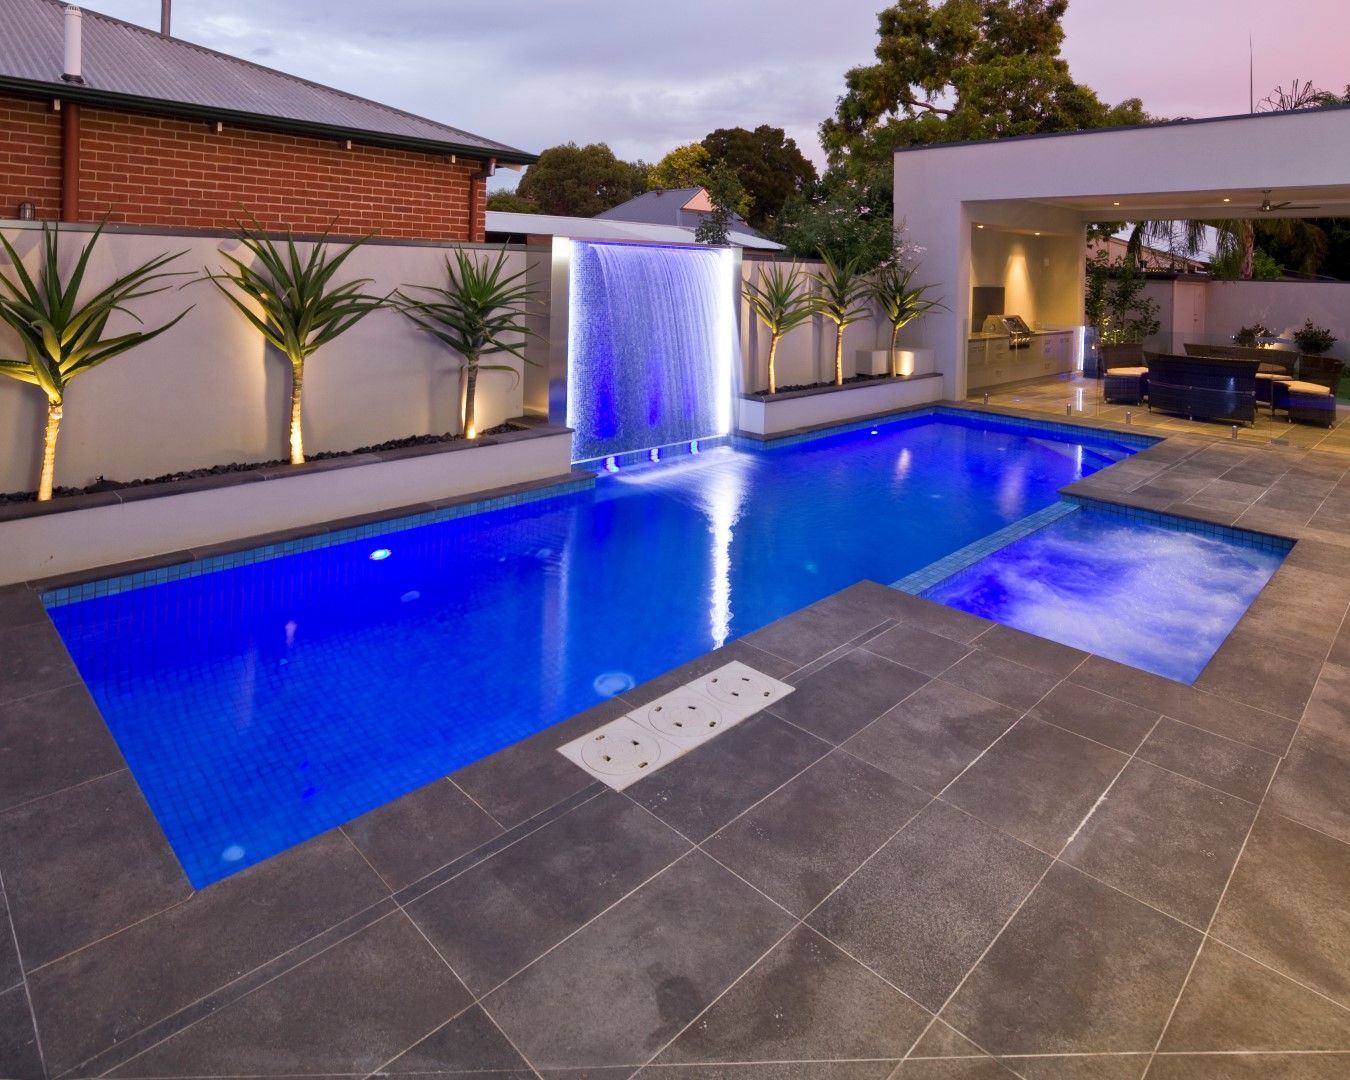 Concretepool swimmingpool freedompools resort pools for Pool design ideas